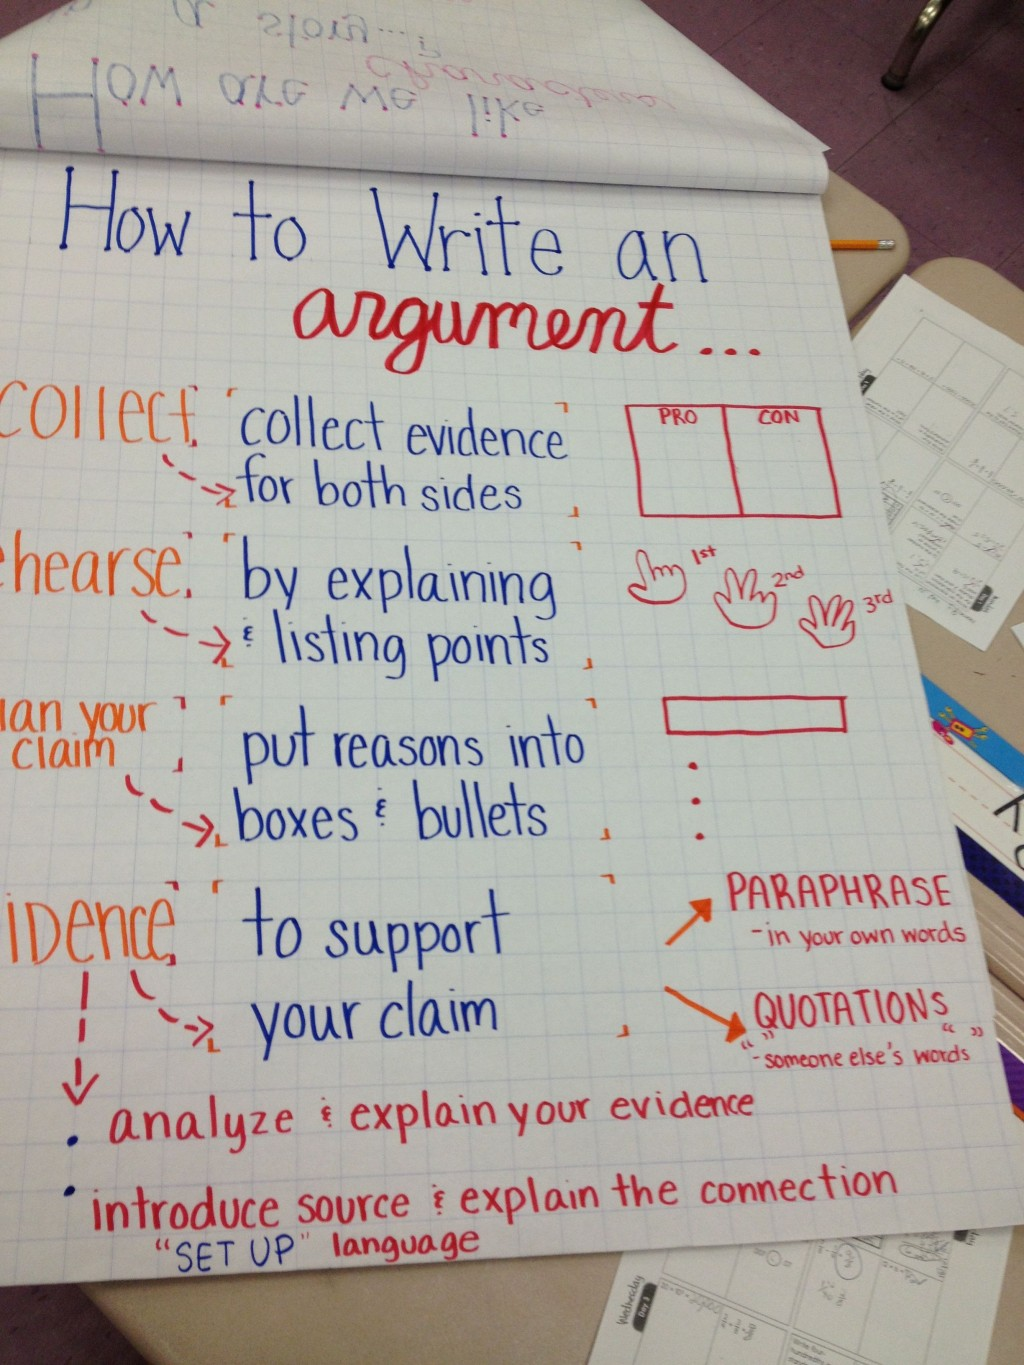 014 Essay Example How To Write Claim For An Frightening A Argumentative Good Rebuttal In Large